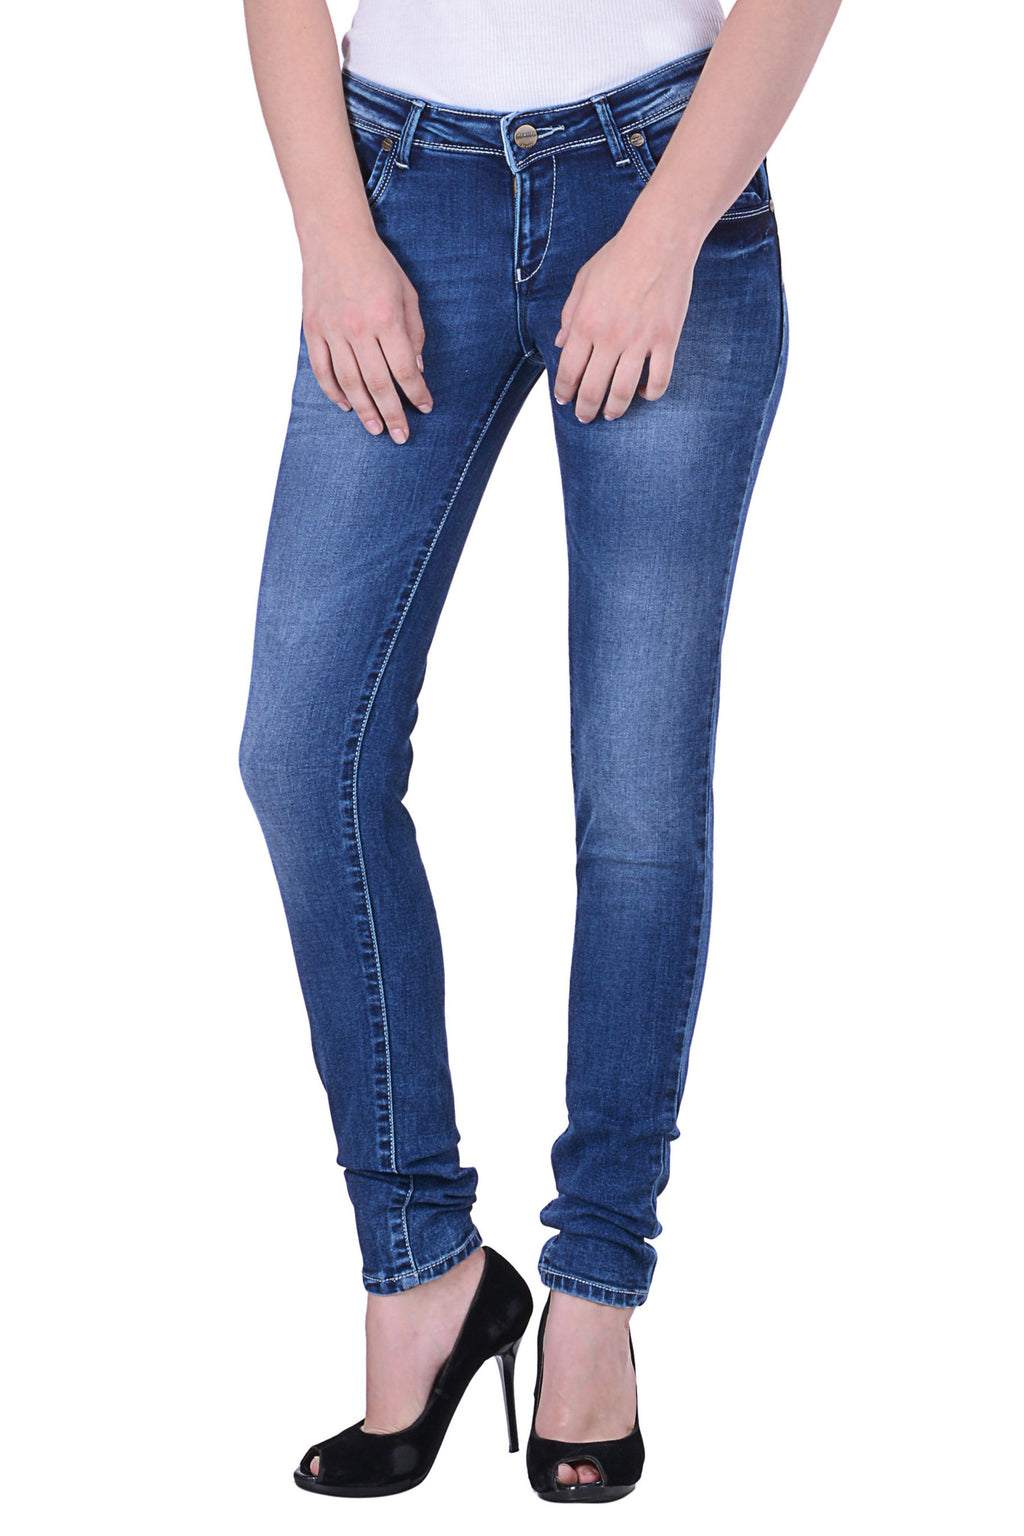 Hoffmen Slim Fit Women's Blue Jeans  MSB1243